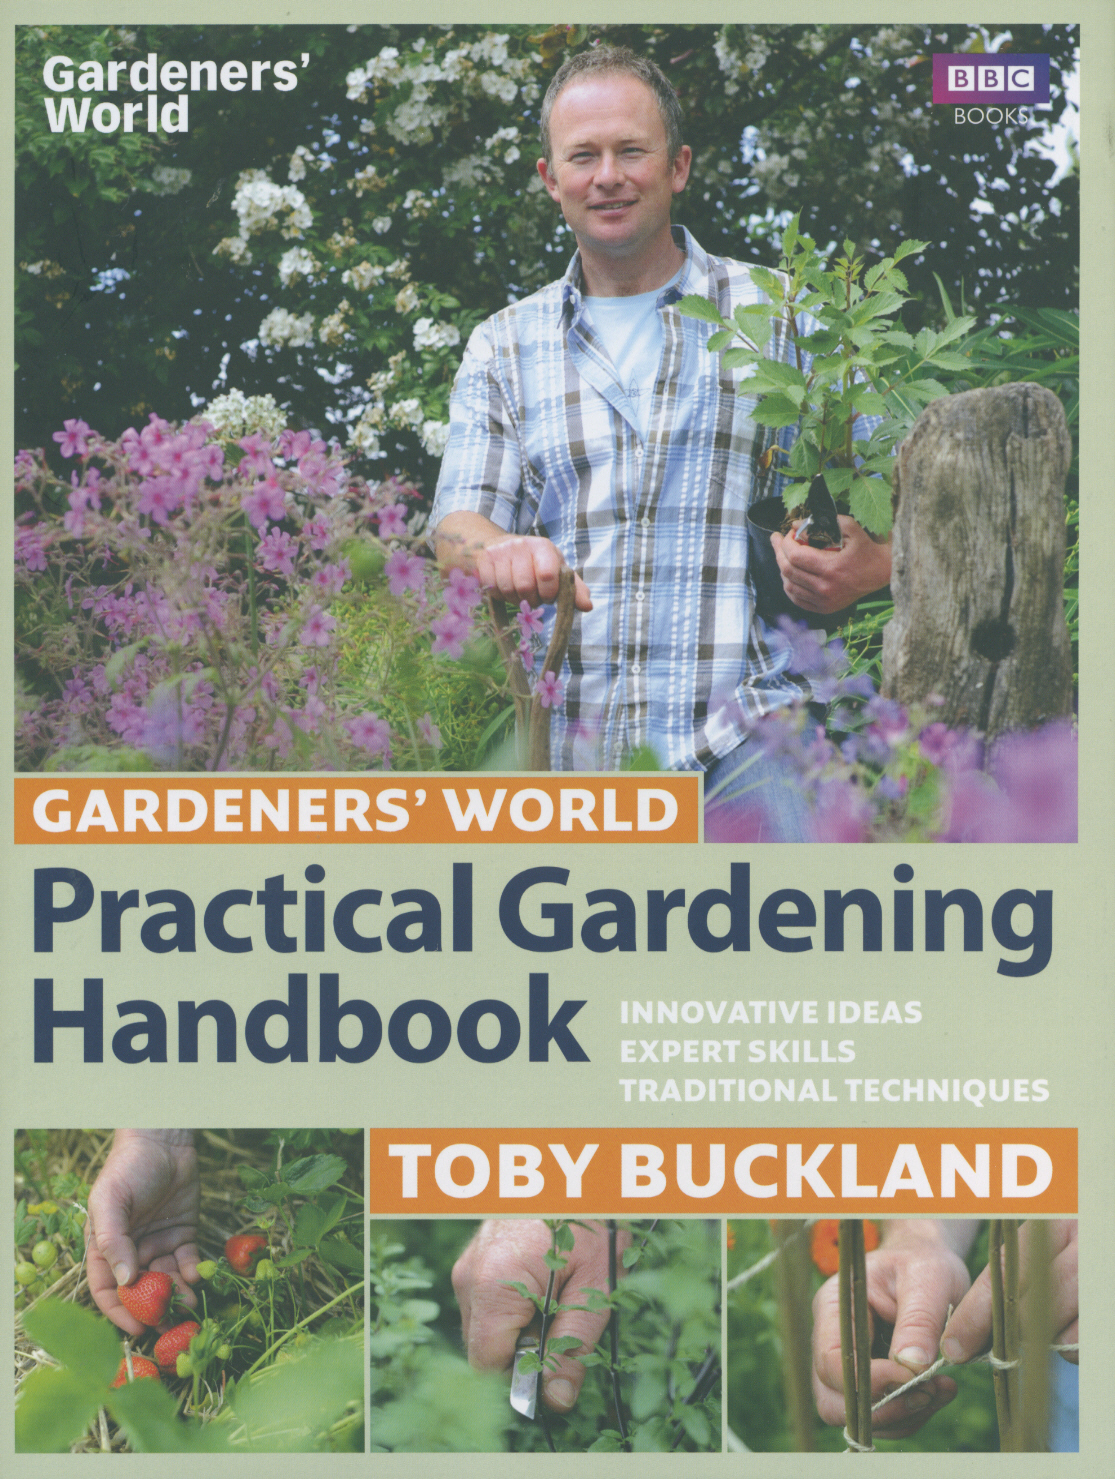 Gardeners' World Practical Gardening Handbook Traditional Techniques,  Expert Skills,  Innovative Ideas